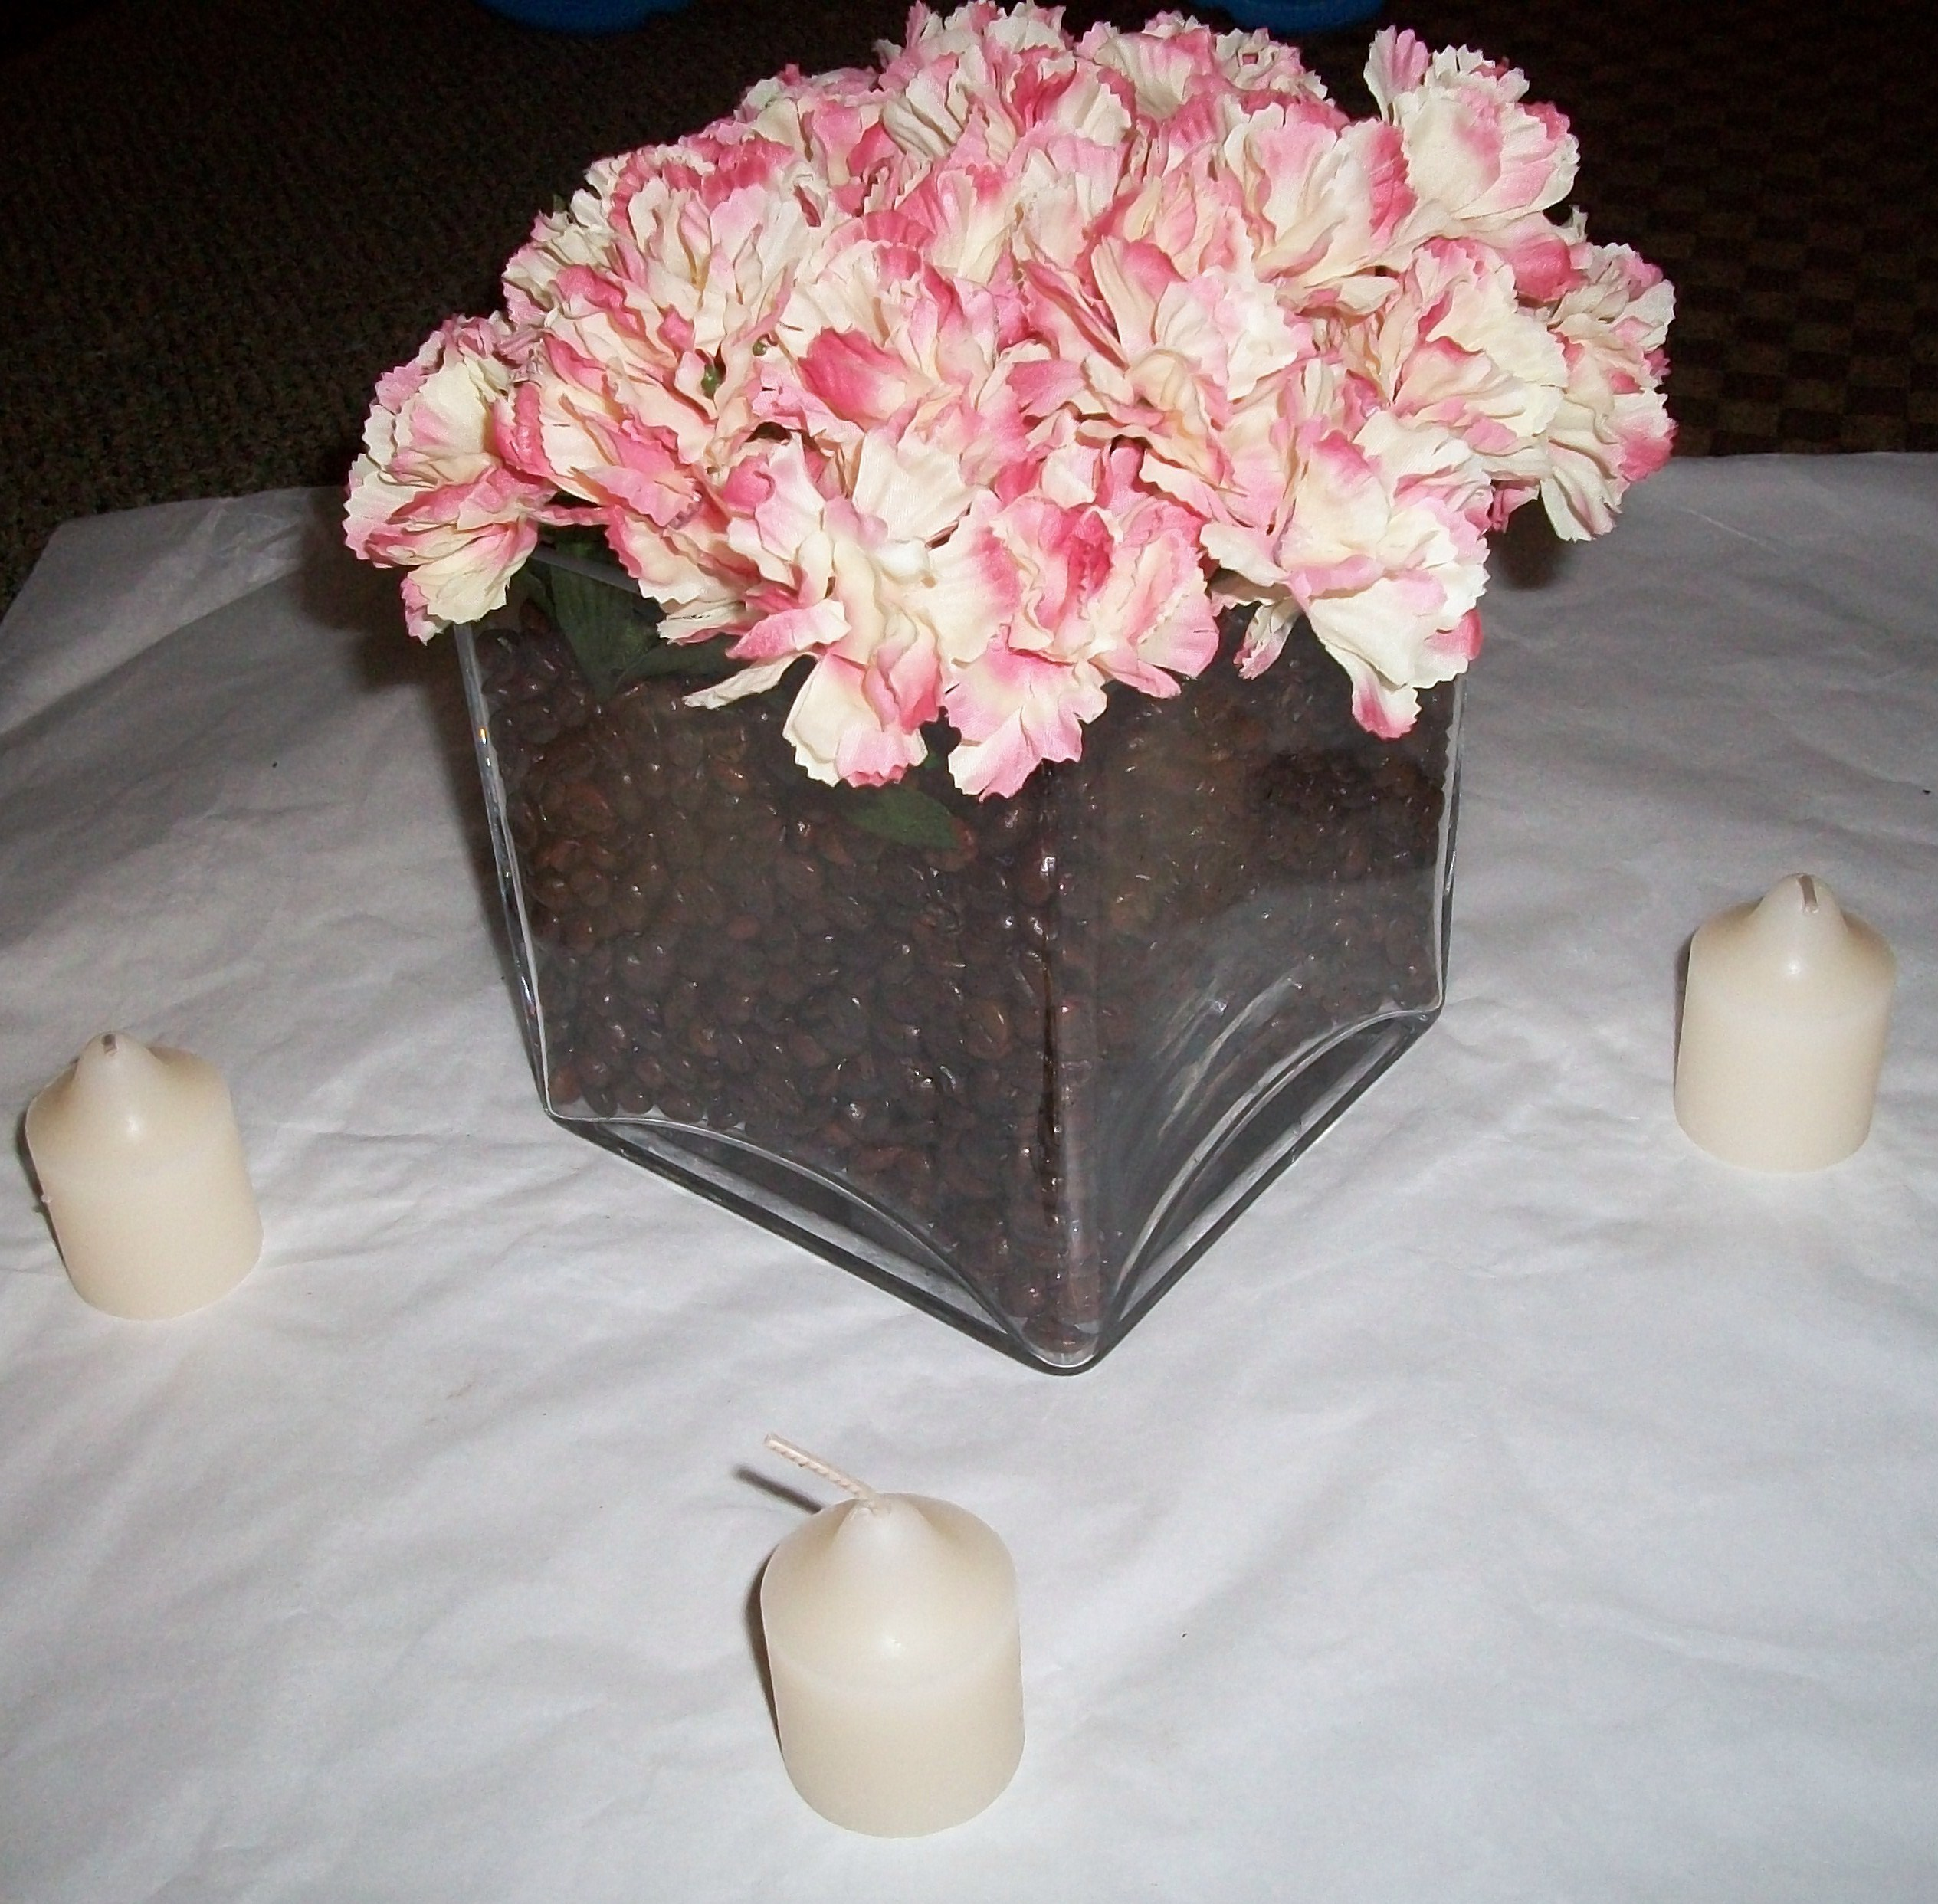 Reception, Flowers & Decor, pink, brown, Centerpieces, Flowers, Centerpiece